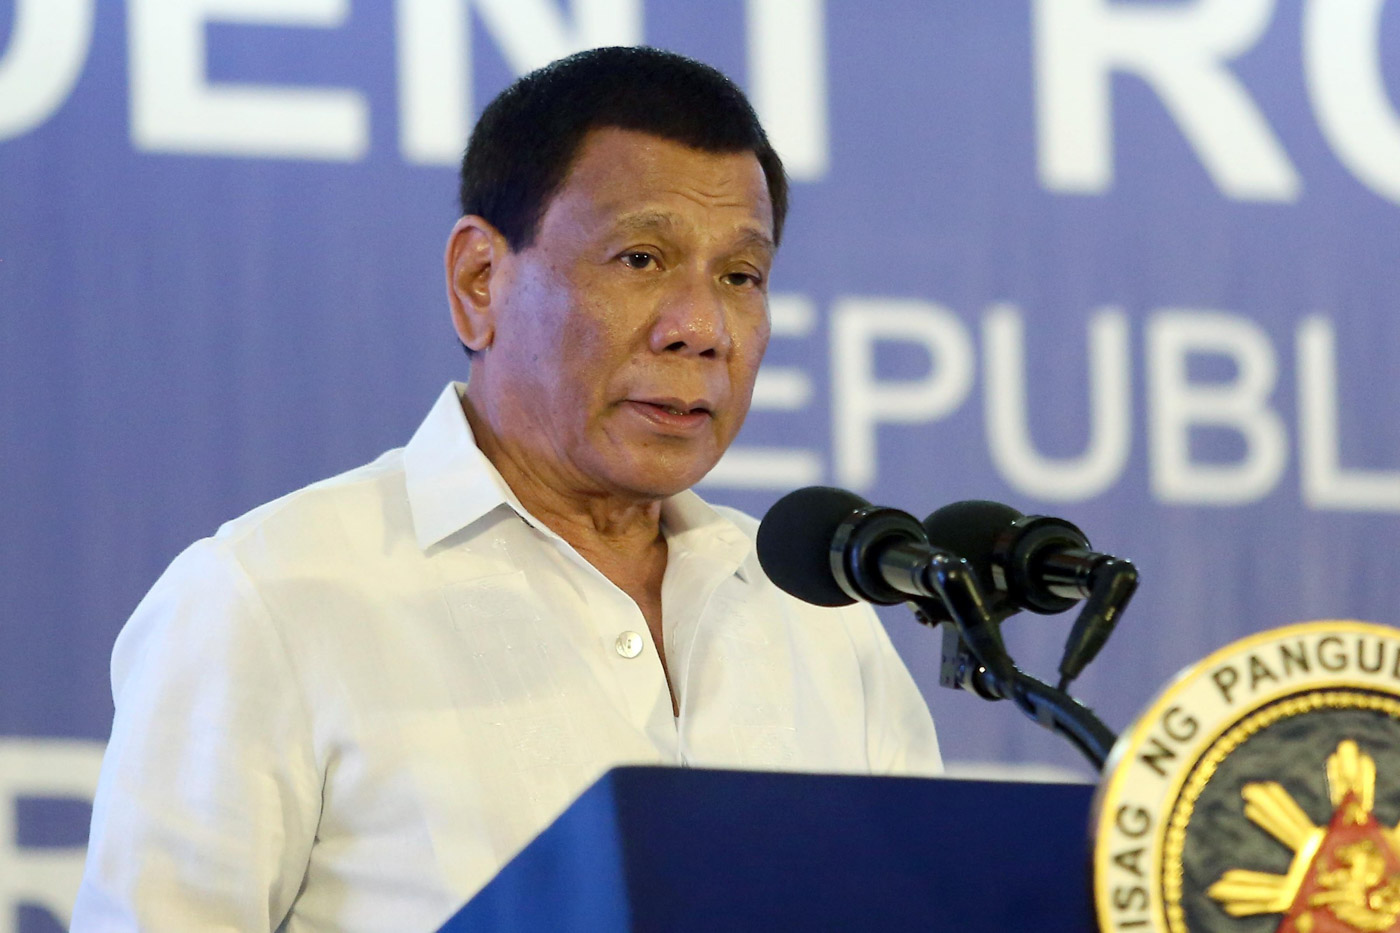 HOSPITAL VISIT. Sources say President Rodrigo Duterte dropped by the hospital on July 22, 2018, a day before his 3rd State of the Nation Address. Malacañang file photo